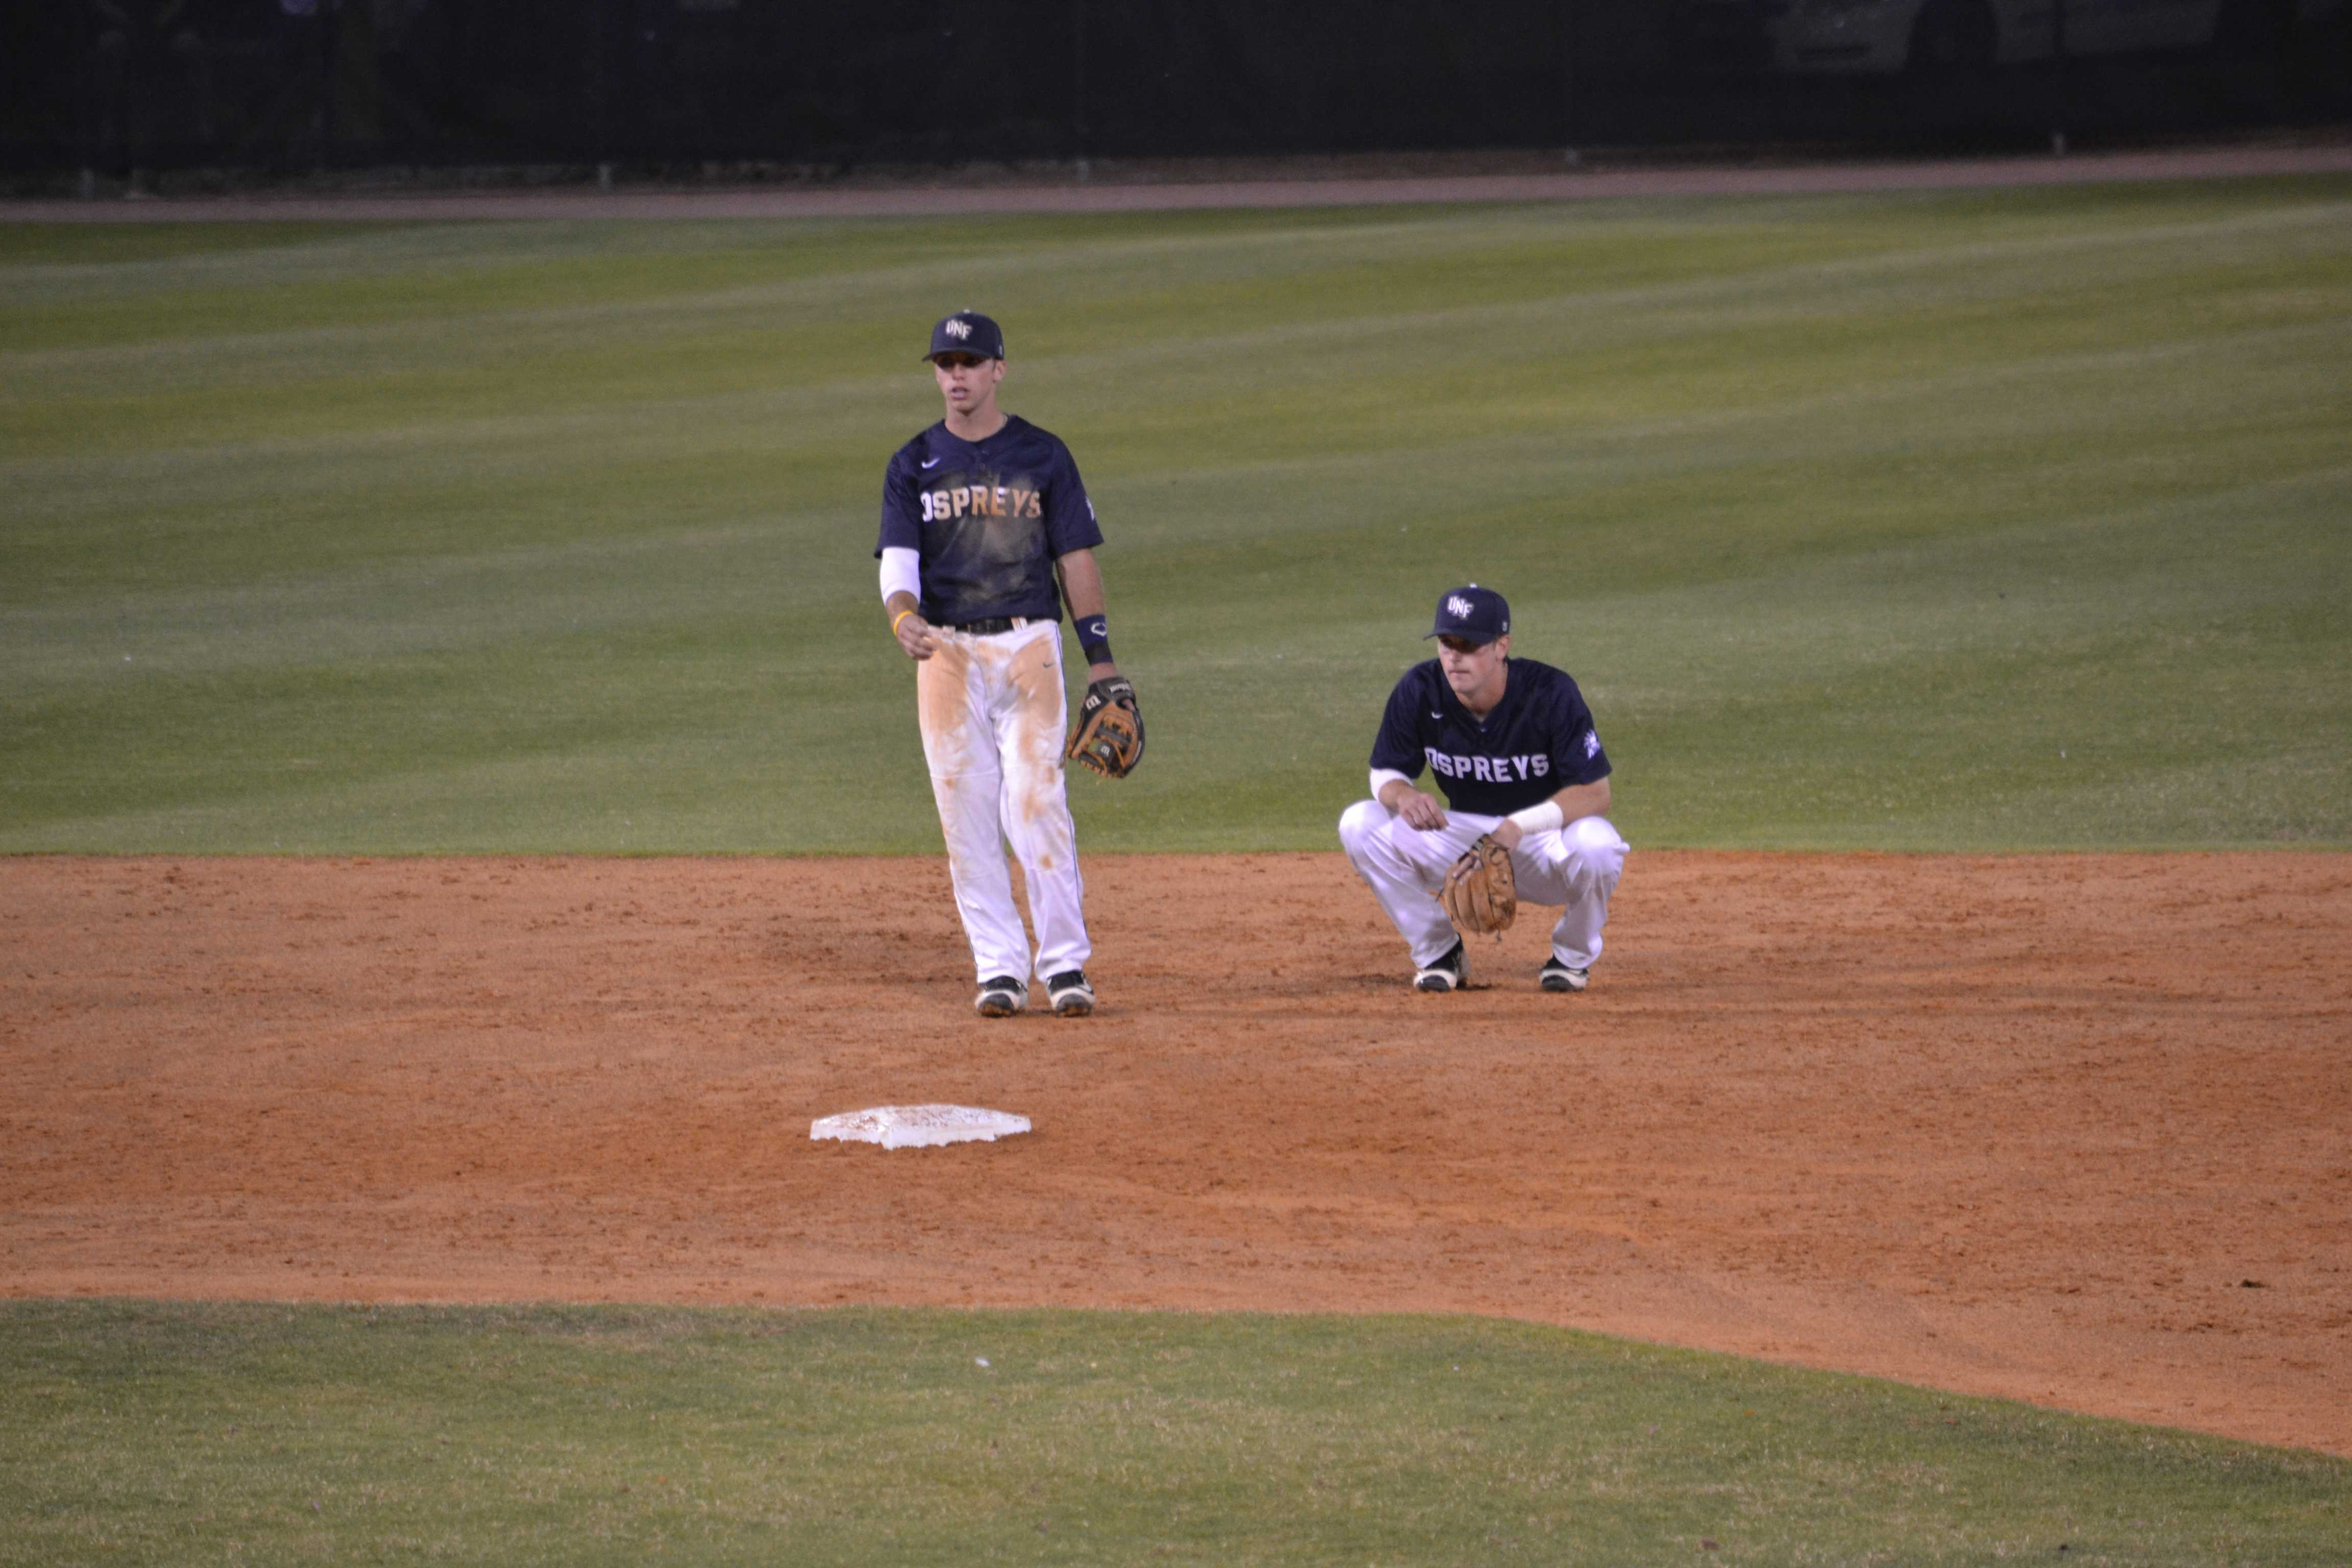 The Osprey defense gave up zero errors Tuesday against UCF. Photo by Emily Woodbury